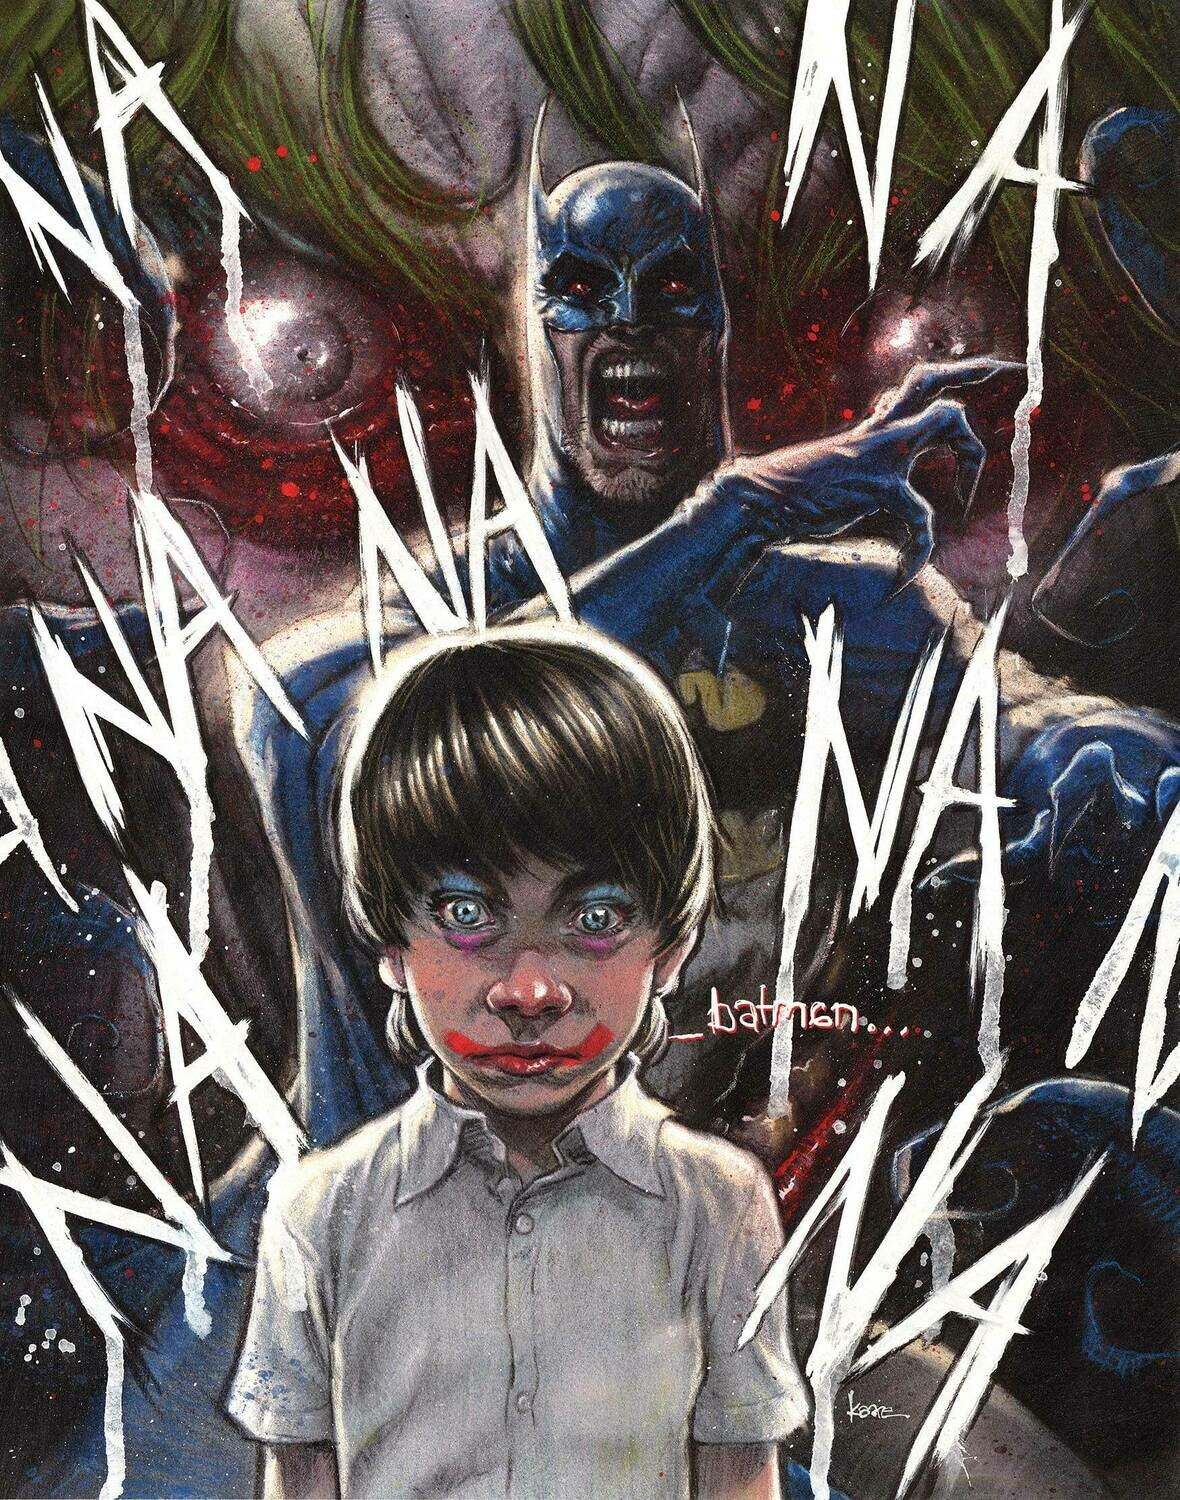 BATMAN THE SMILE KILLER #1 K ANDREWS VARIANT EDITION